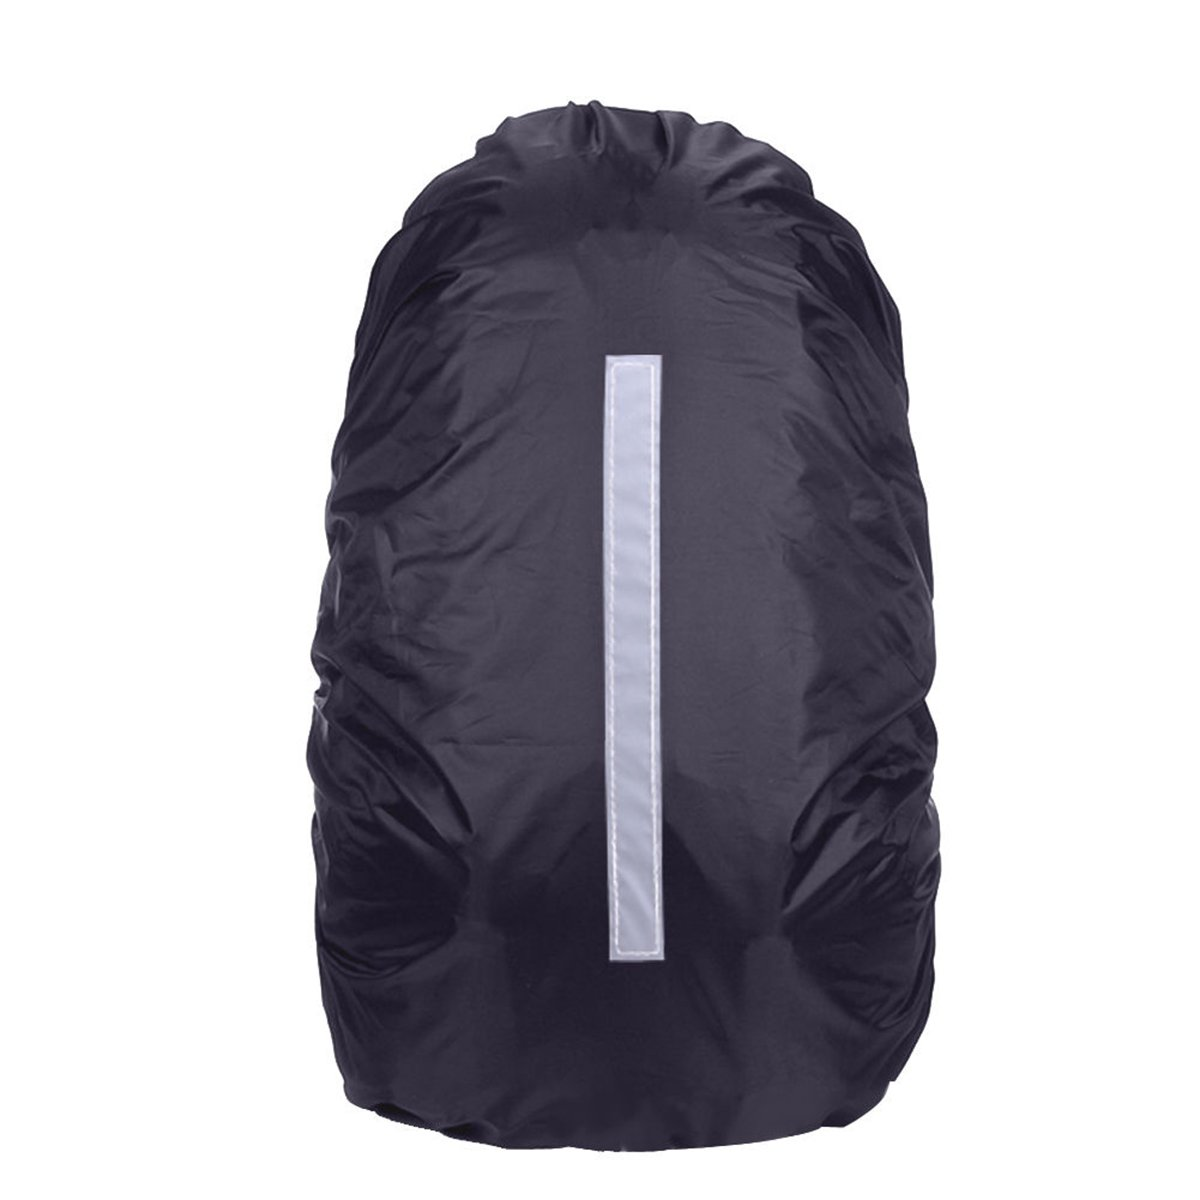 Backpack Raincover Rucksack Rain Cover with Reflective Stripe for Hiking Camping